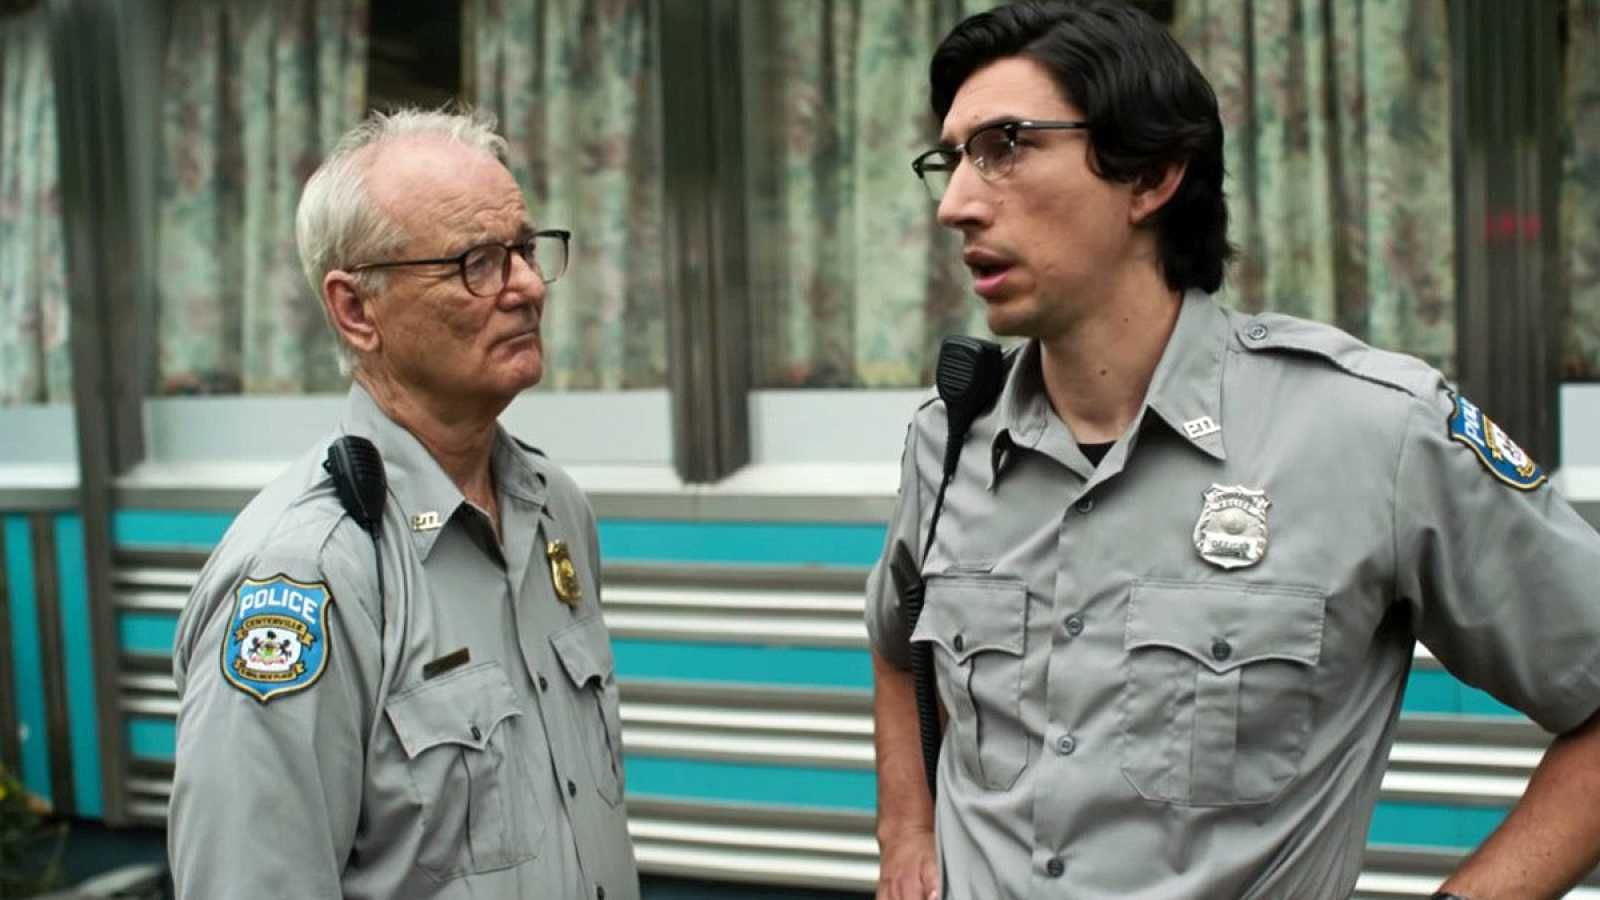 The Dead Don't Die, el film de Jim Jarmusch con Bill Murray, compite por la Palma de Oro